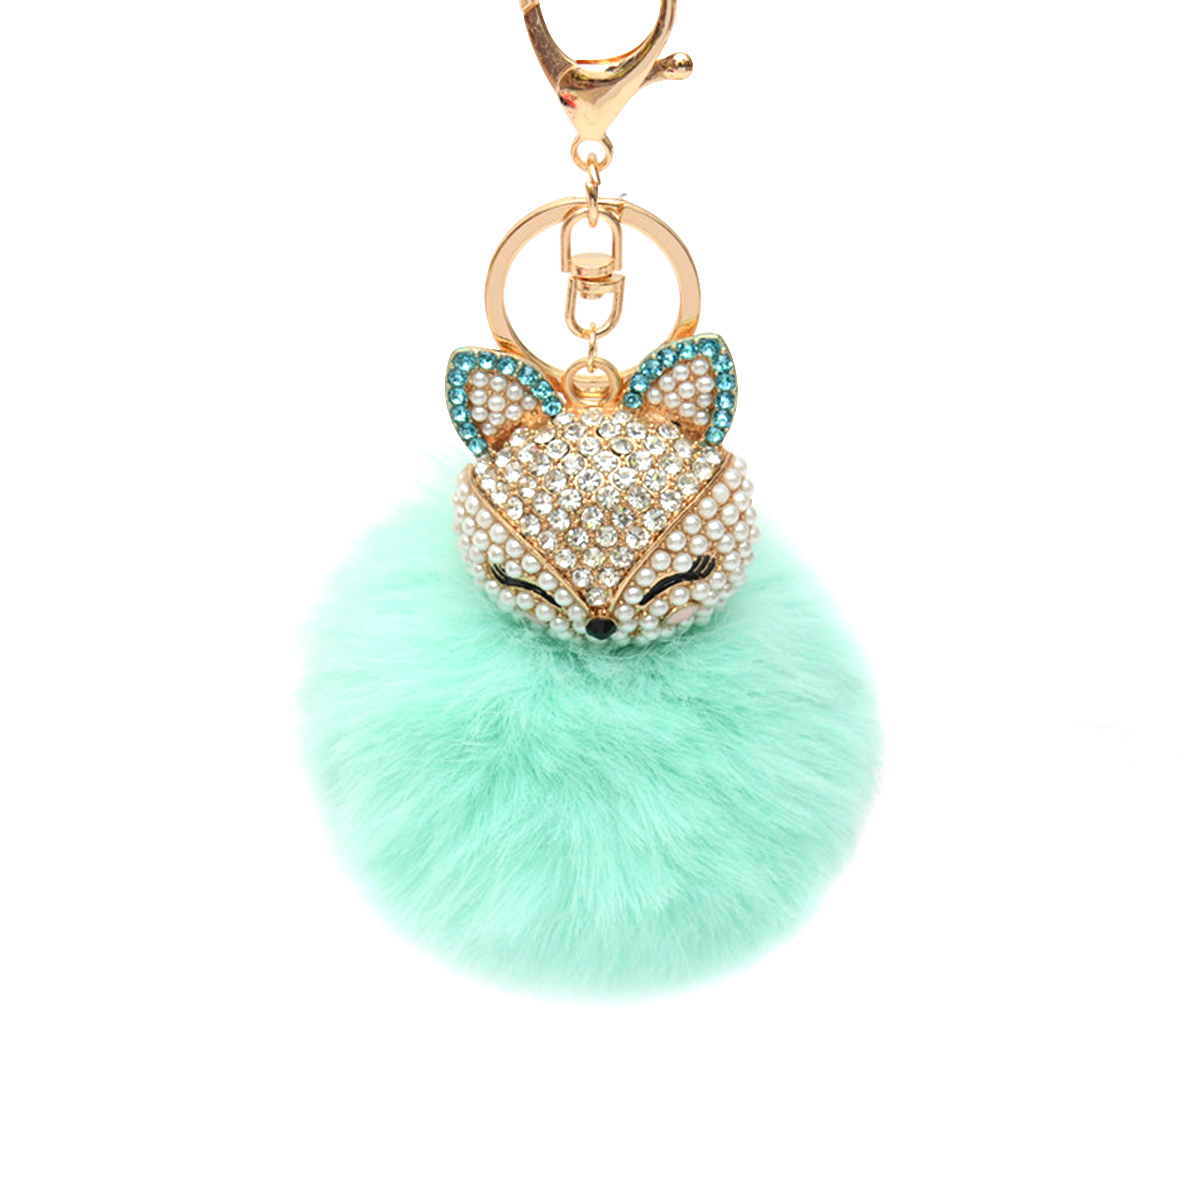 Fluffy Ball Keychain with Pearls Rhinestones Inlay Key Chain for Womens Bag / Cellphone / Car Pendant (Light Green)